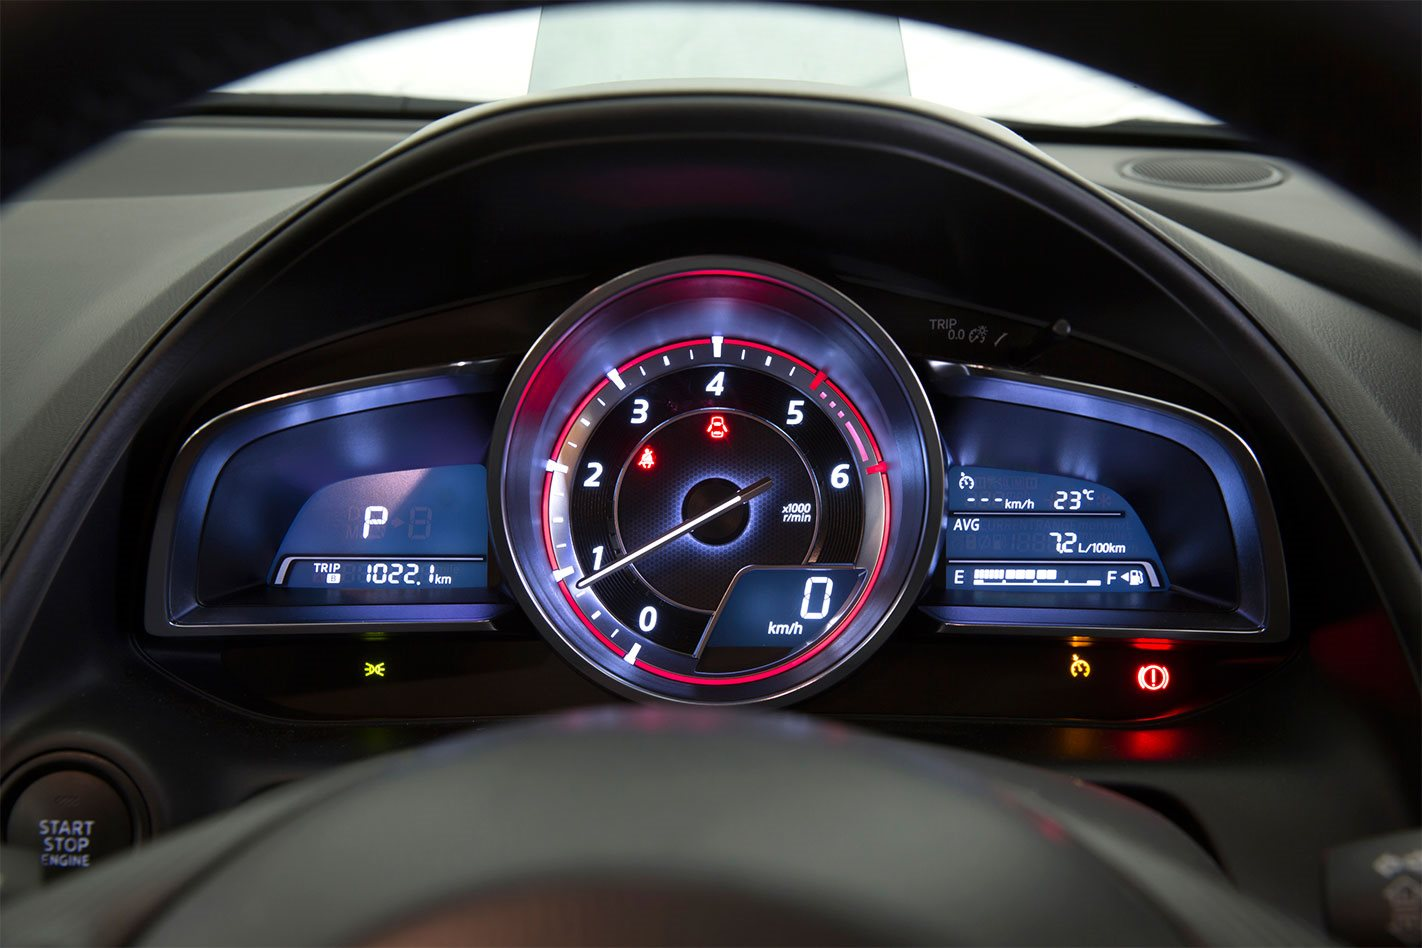 2017 mazda cx 3 grand touring review australia cars for you - 2017 Mazda Cx 3 Grand Touring Review Australia Cars For You 36